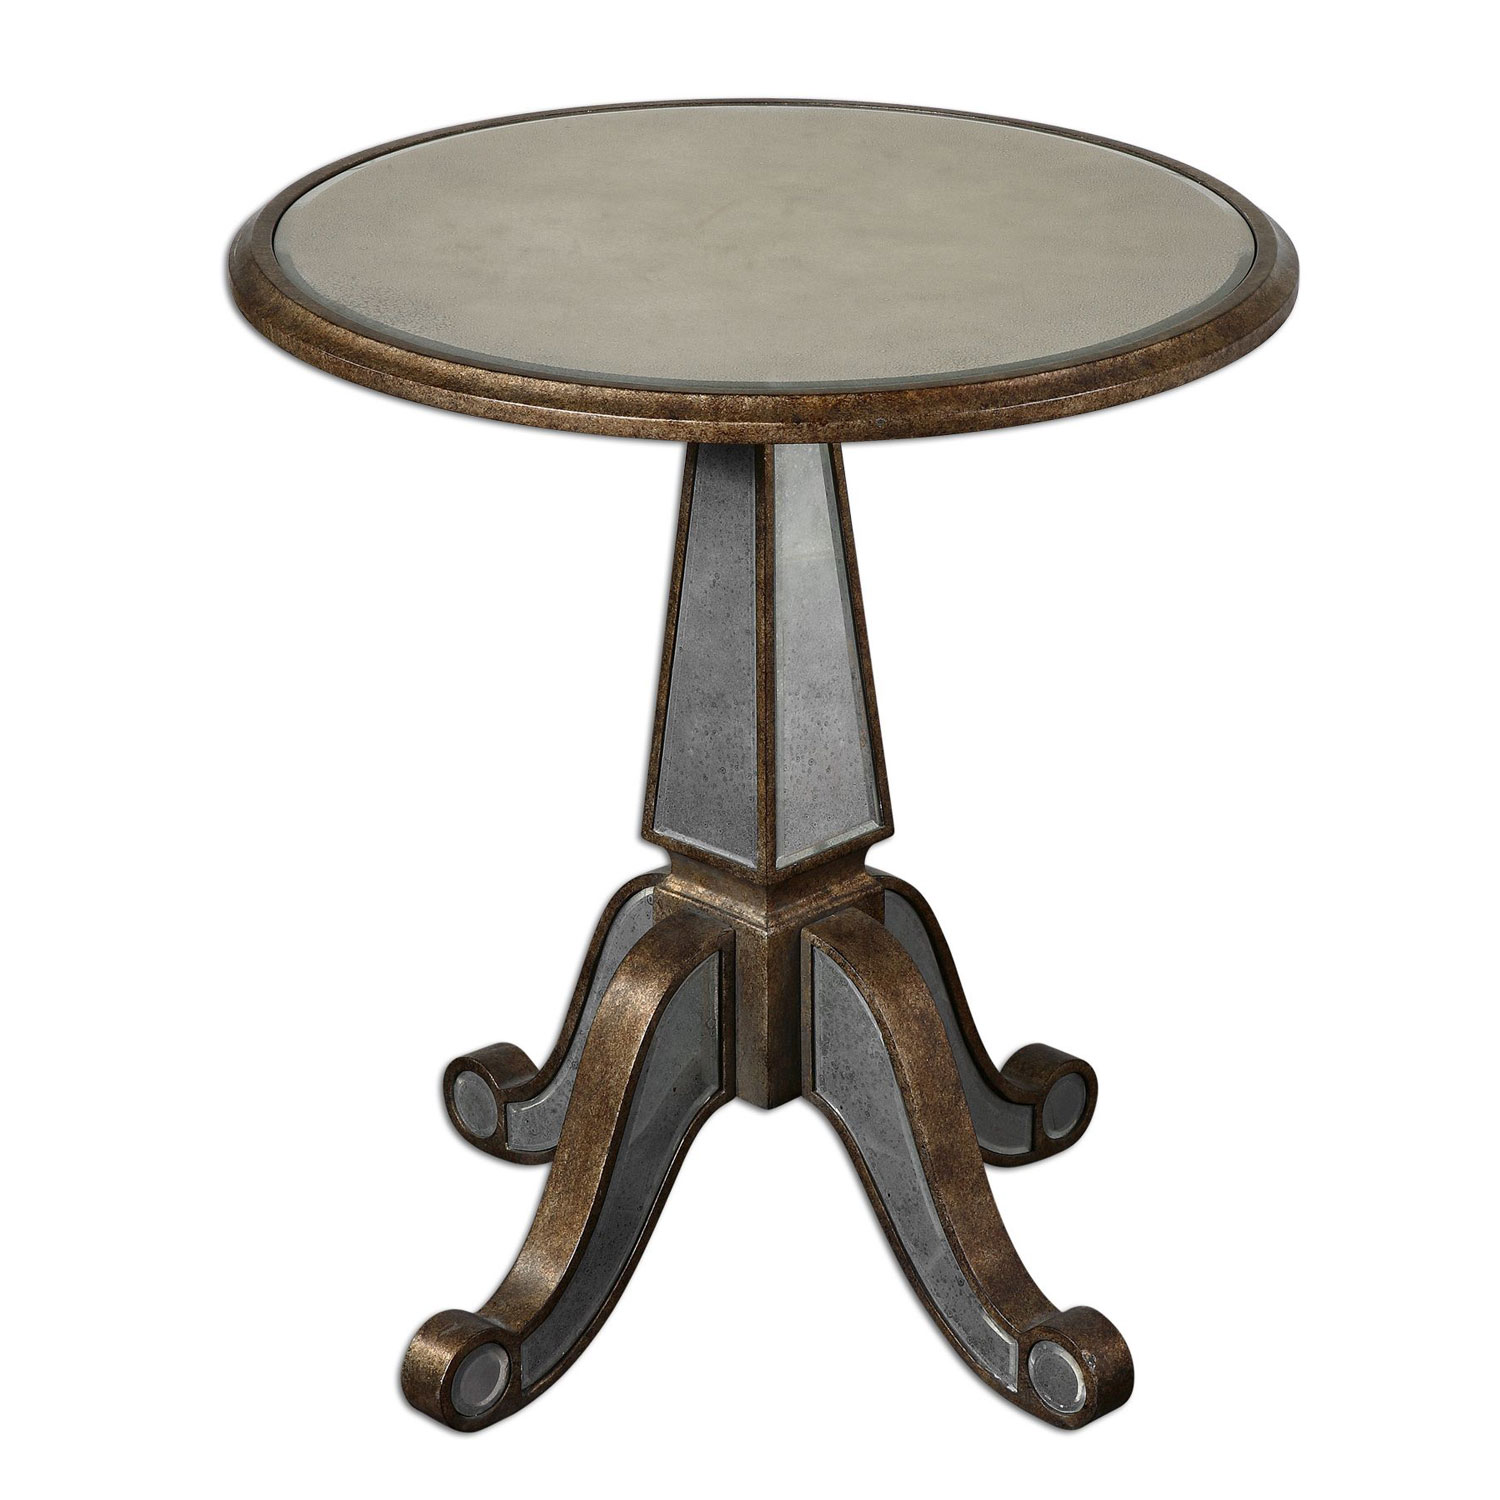 uttermost eraman antique gold accent table bellacor hover zoom wine rack furniture end tables with storage space vintage sofa coffee chairs under stool side small concrete dining